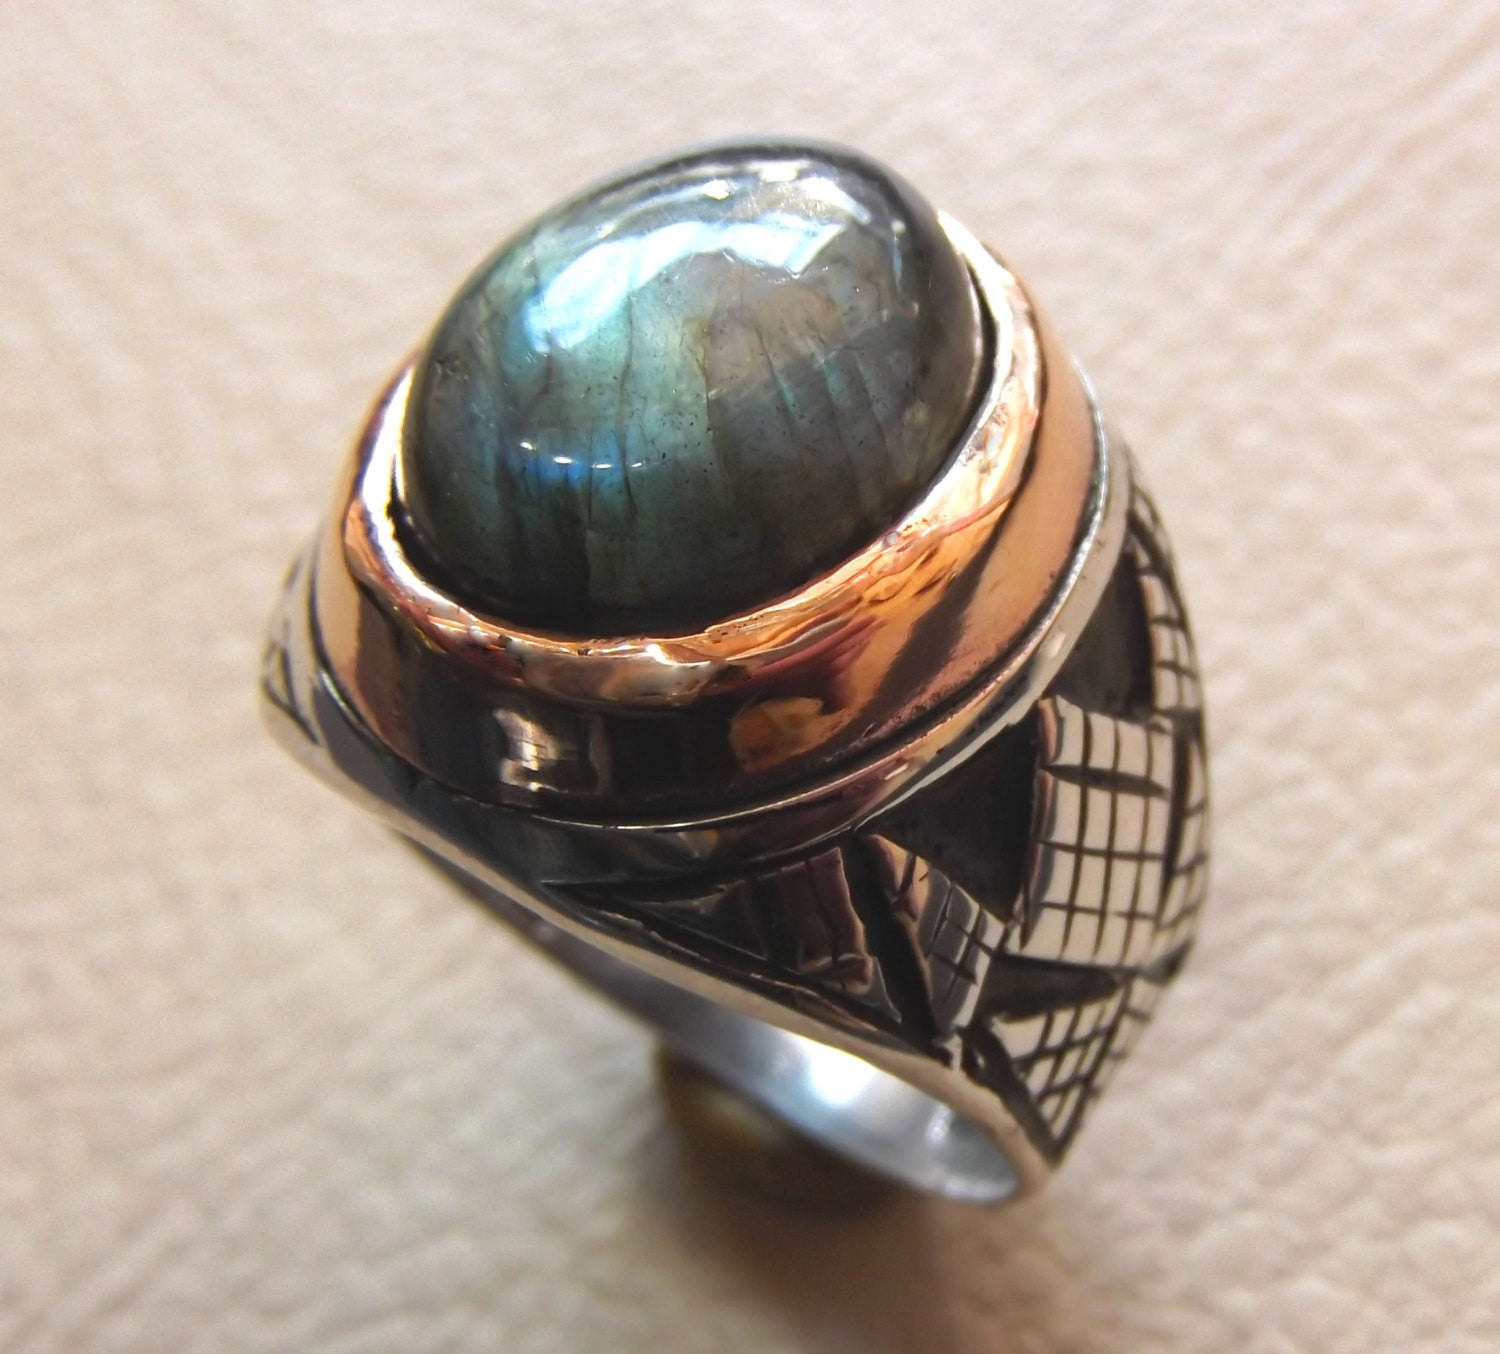 Labradorite natural stone multi color semi precious stone heavy man ring sterling silver 925 bronze frame any sizes jewelry express shipping